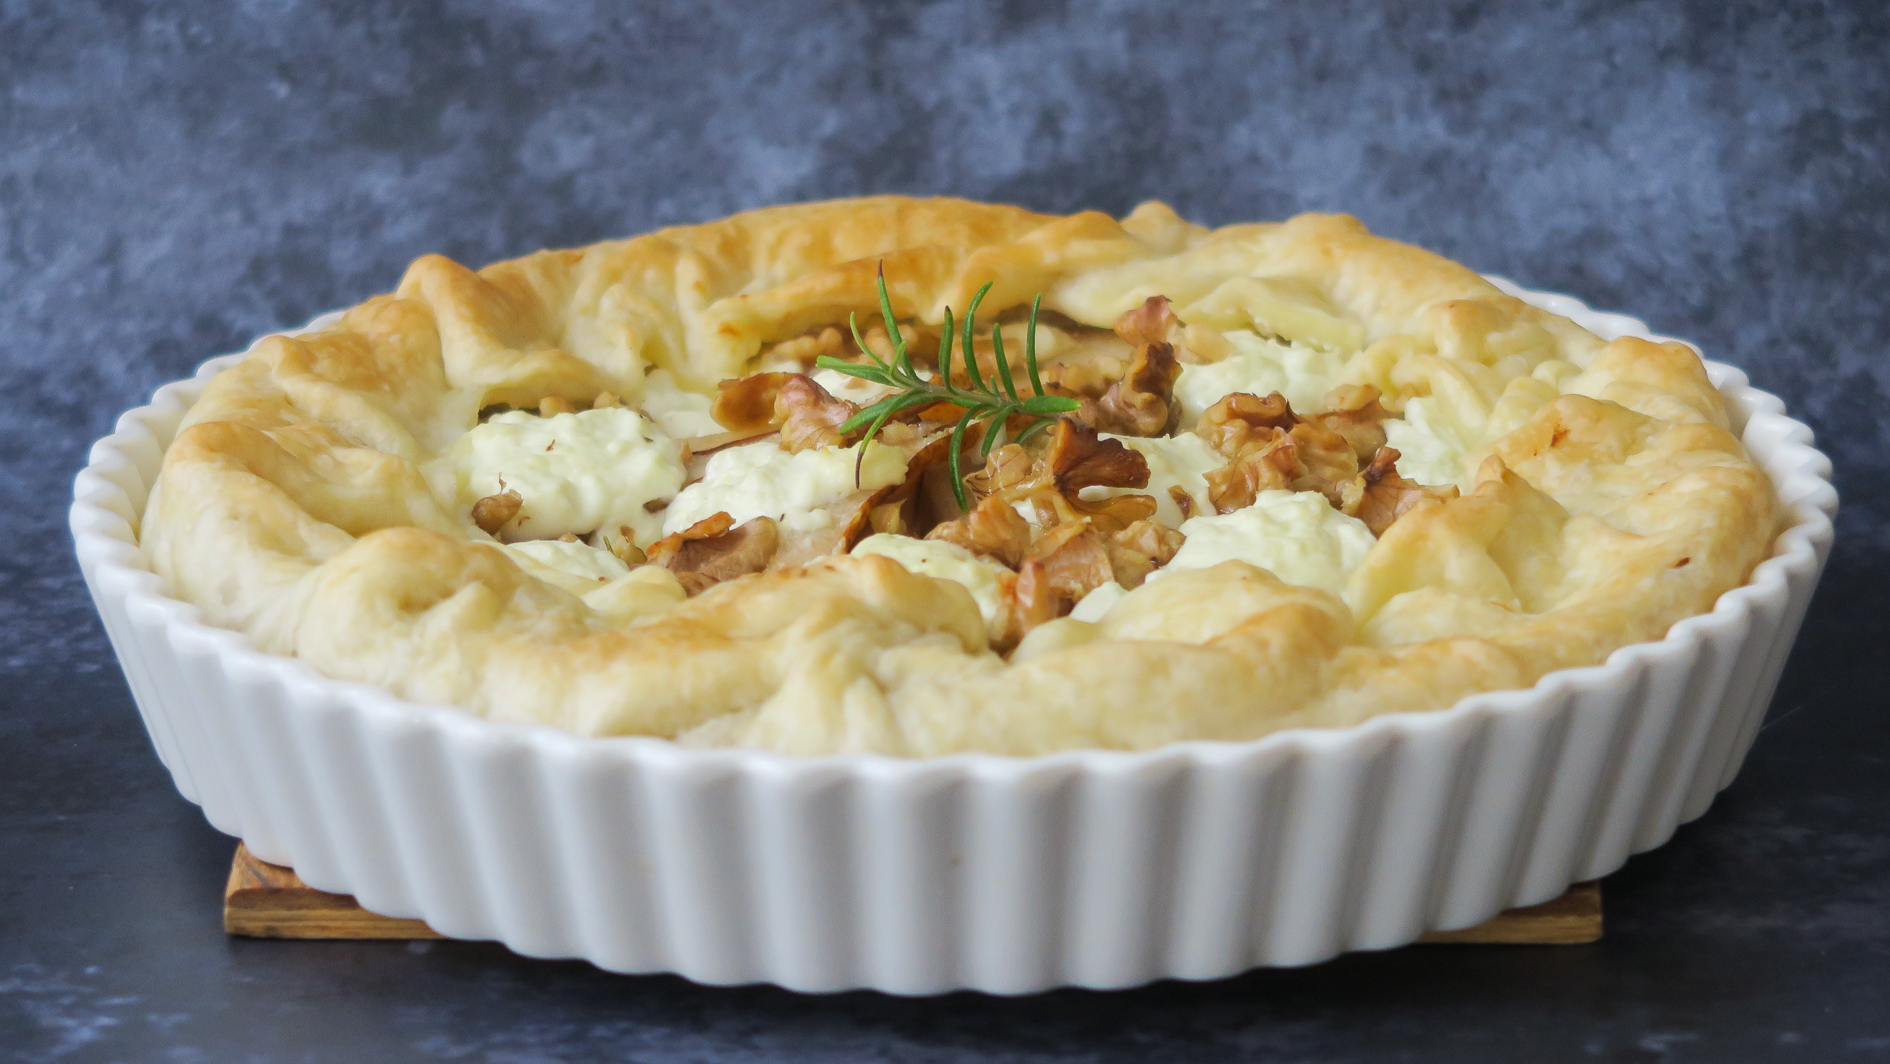 Baked Galette with pear, leek and goat cheese